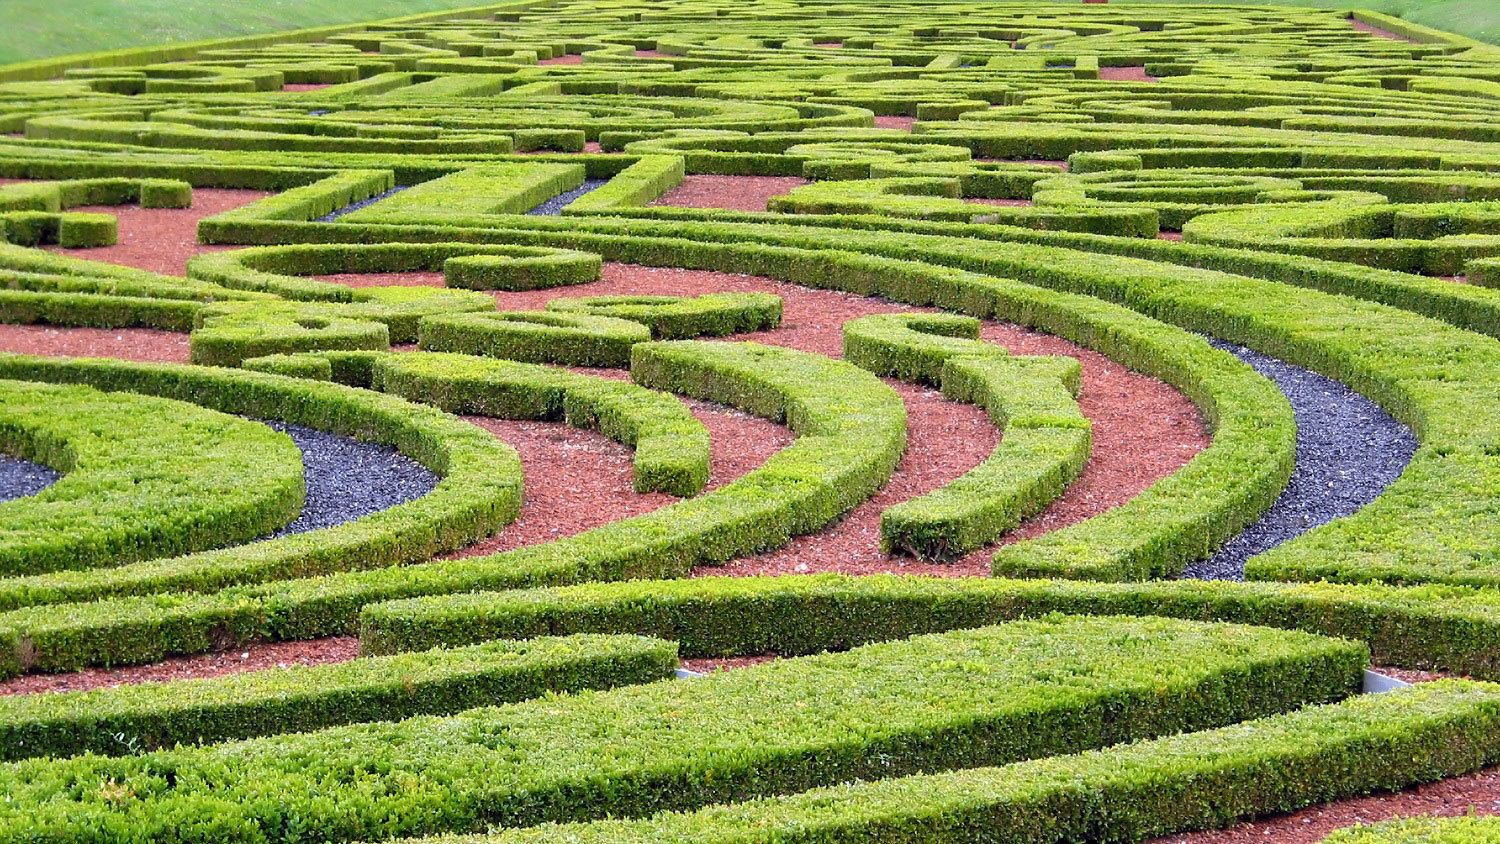 Closeup of a shrubbery maze in the gardens of Vaux Le Vicomte.